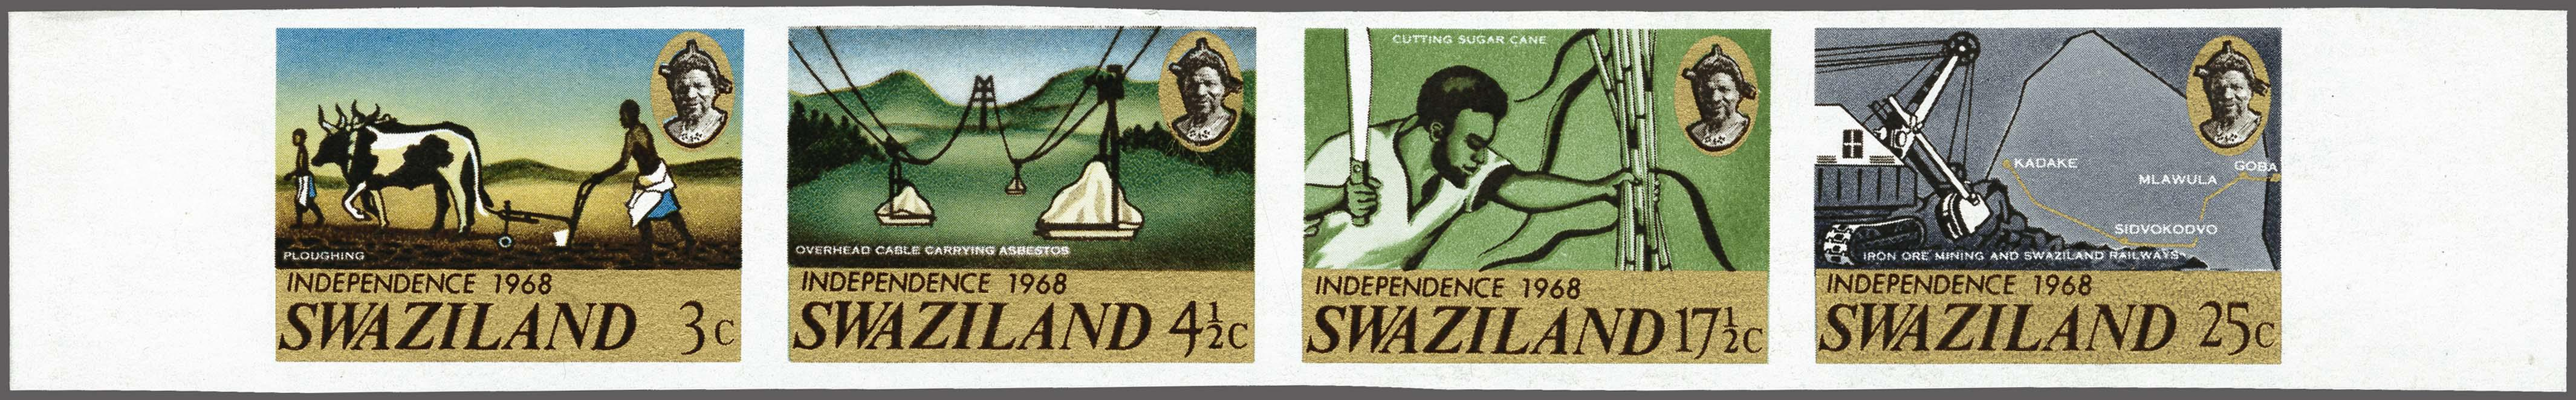 Lot 193 - Great Britain and former colonies swaziland -  Corinphila Veilingen Auction 250-253 - Day 1 - Foreign countries